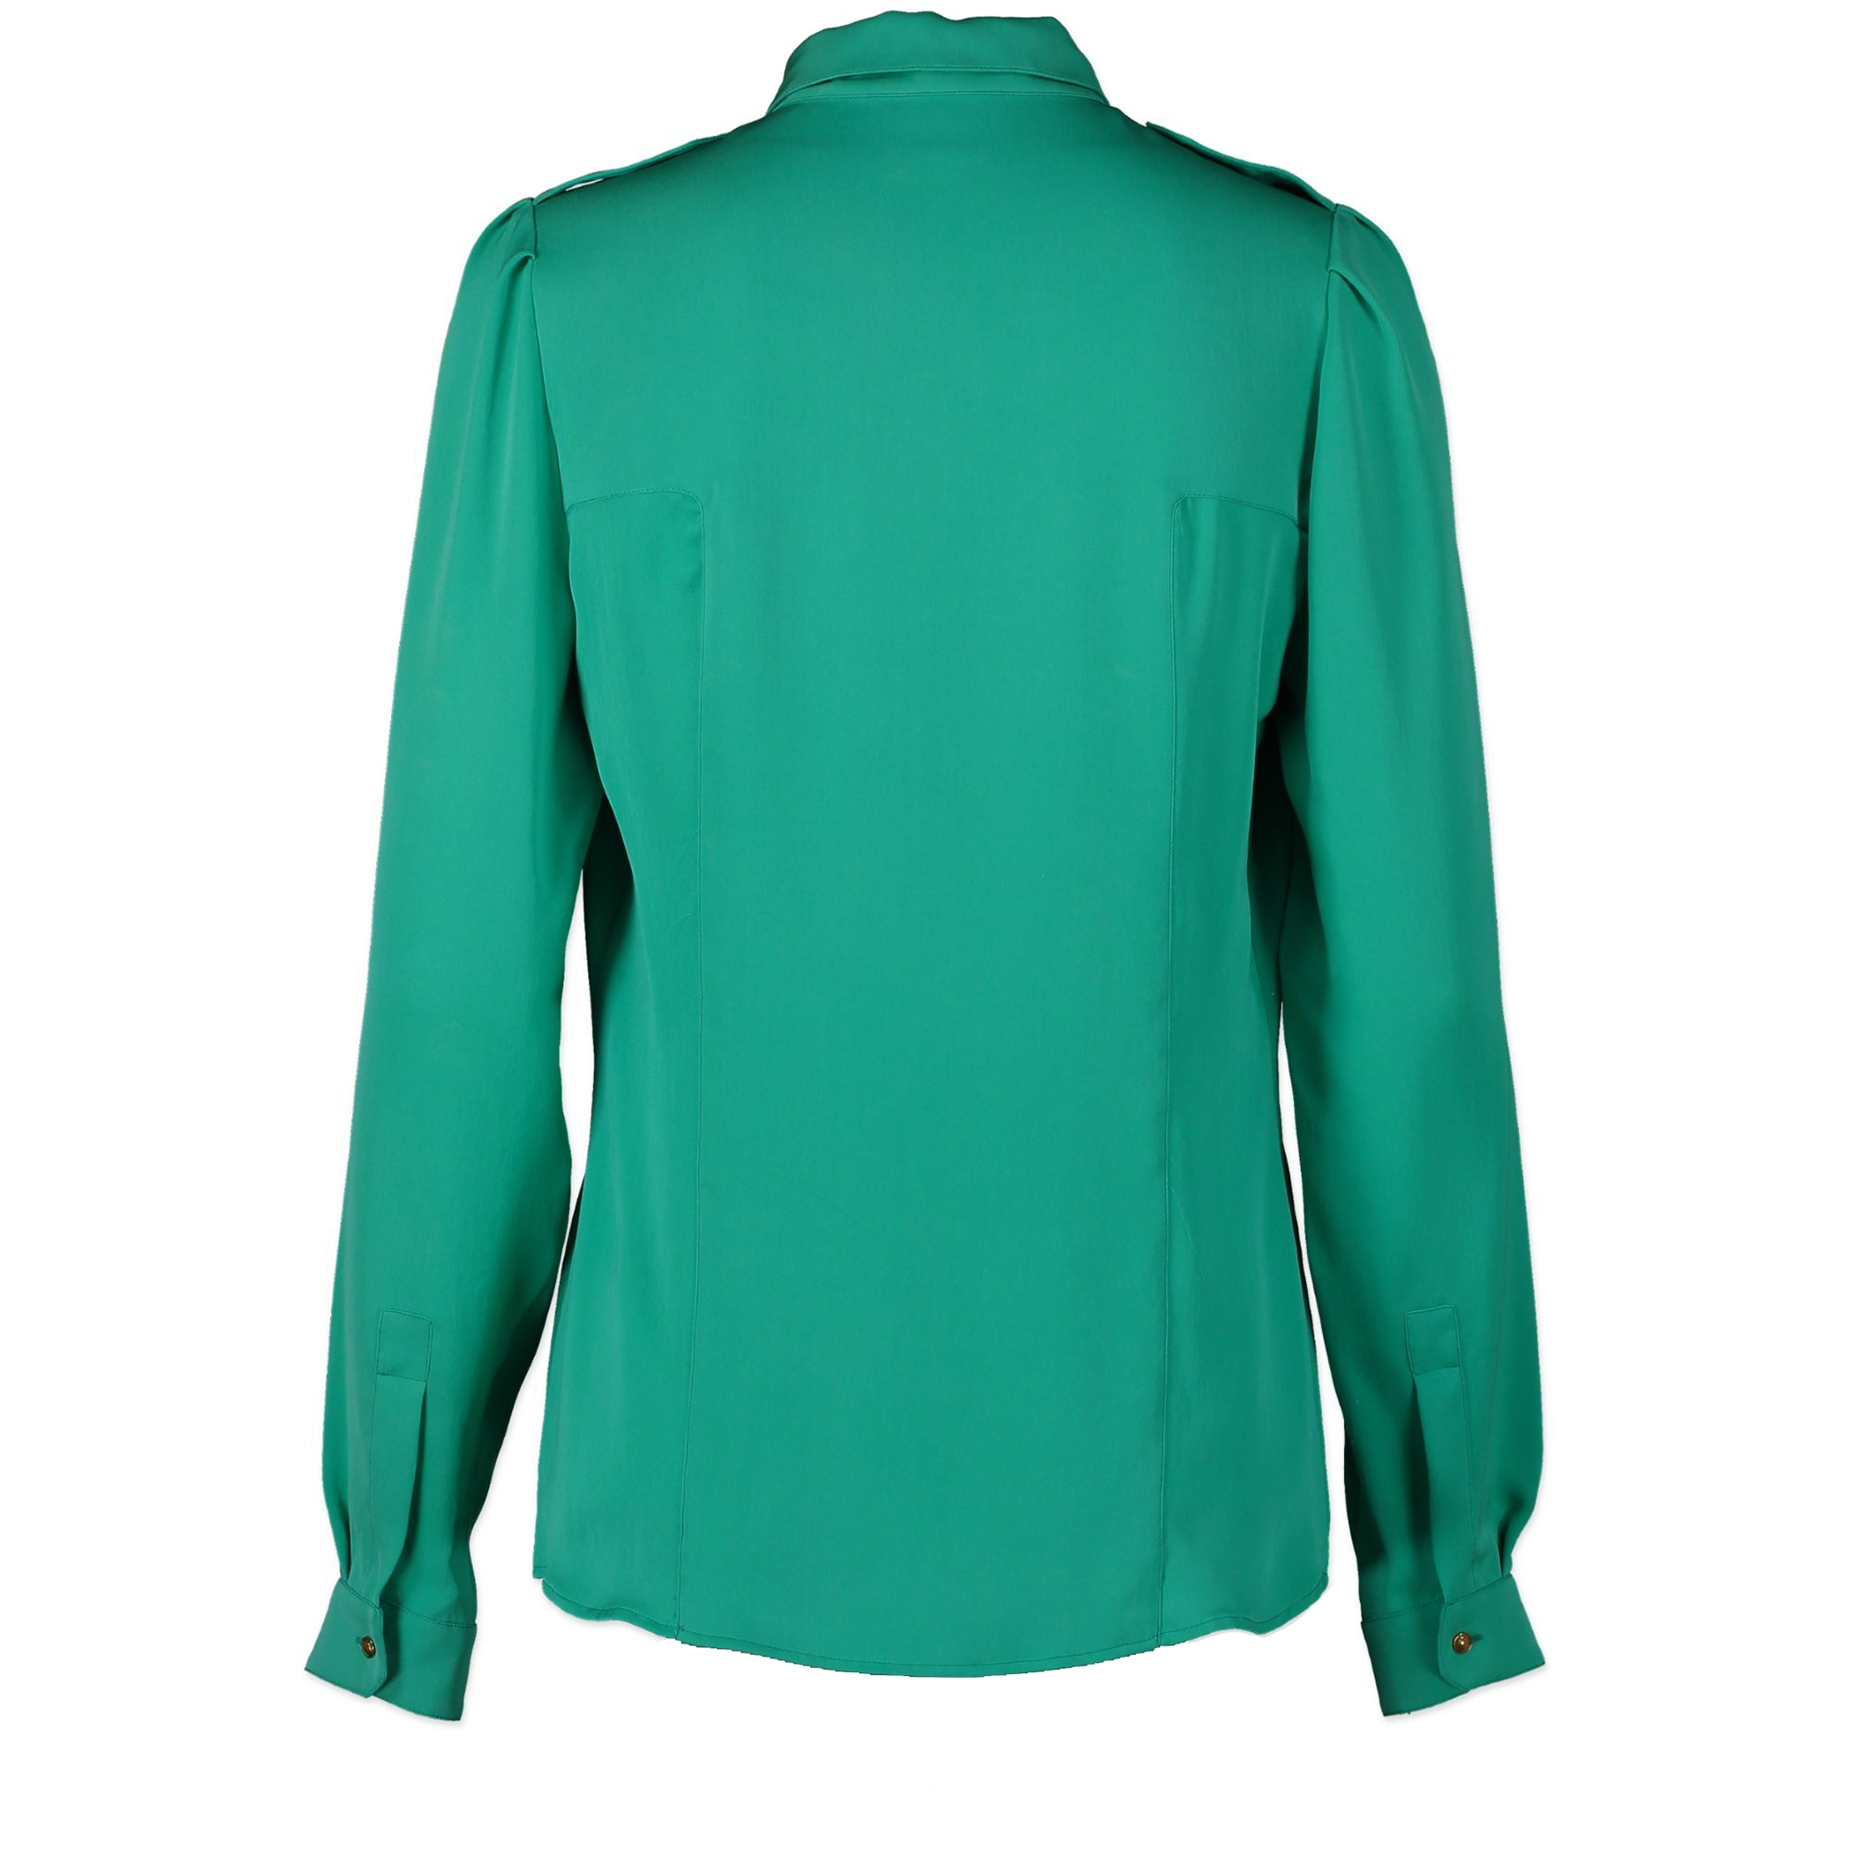 Gucci Turquoise Silk Blouse - Size 40 - we buy and sell your authentic designer bags